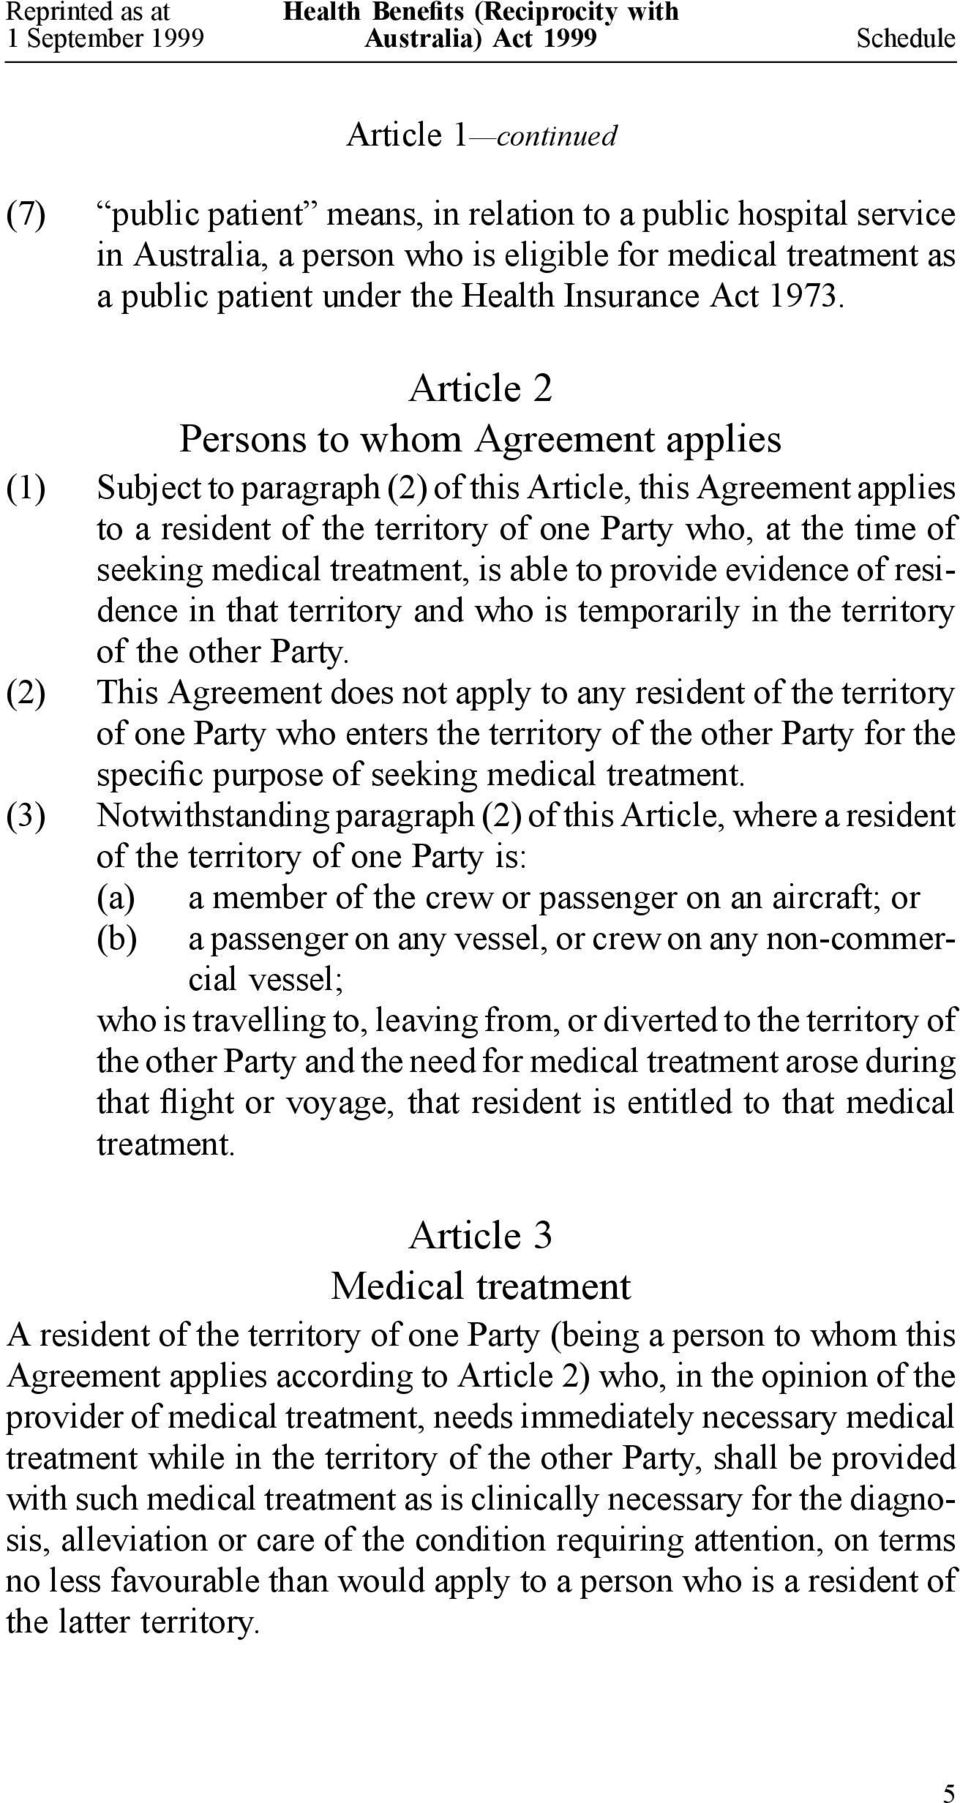 Article 2 Persons to whom Agreement applies (1) Subject to paragraph (2) of this Article, this Agreement applies to a resident of the territory of one Party who, at the time of seeking medical